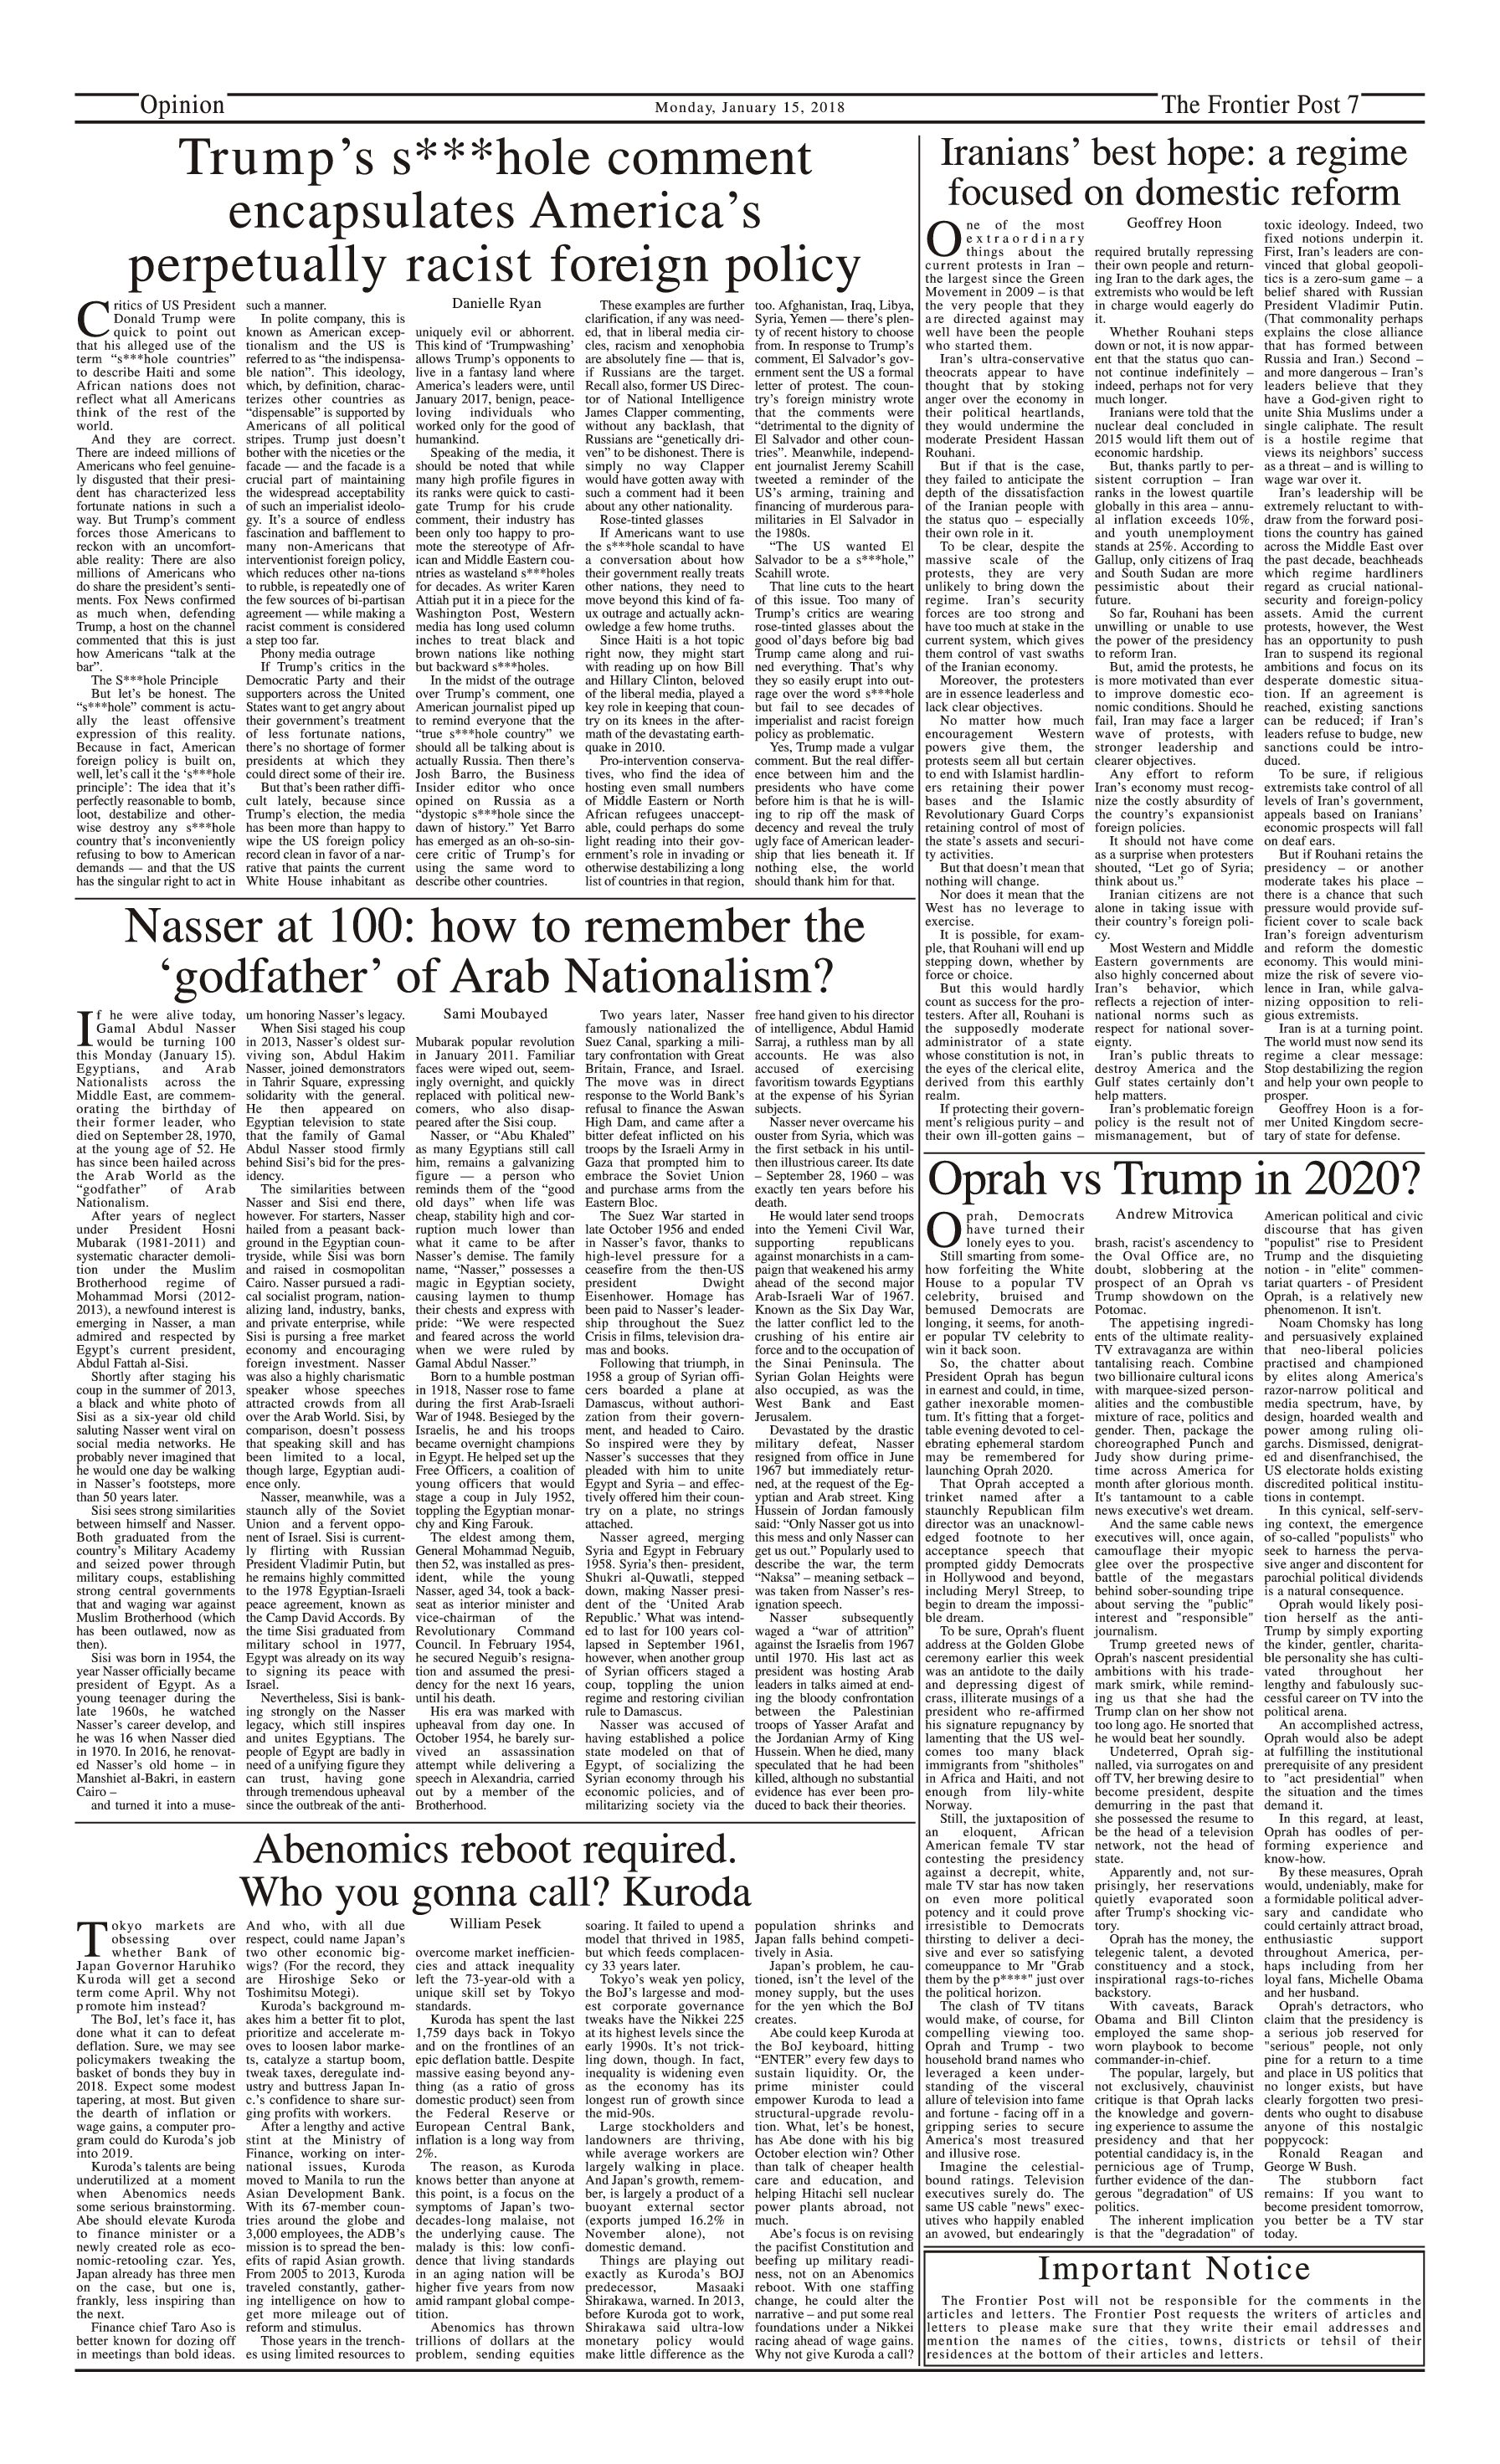 Opinion Page 15-1